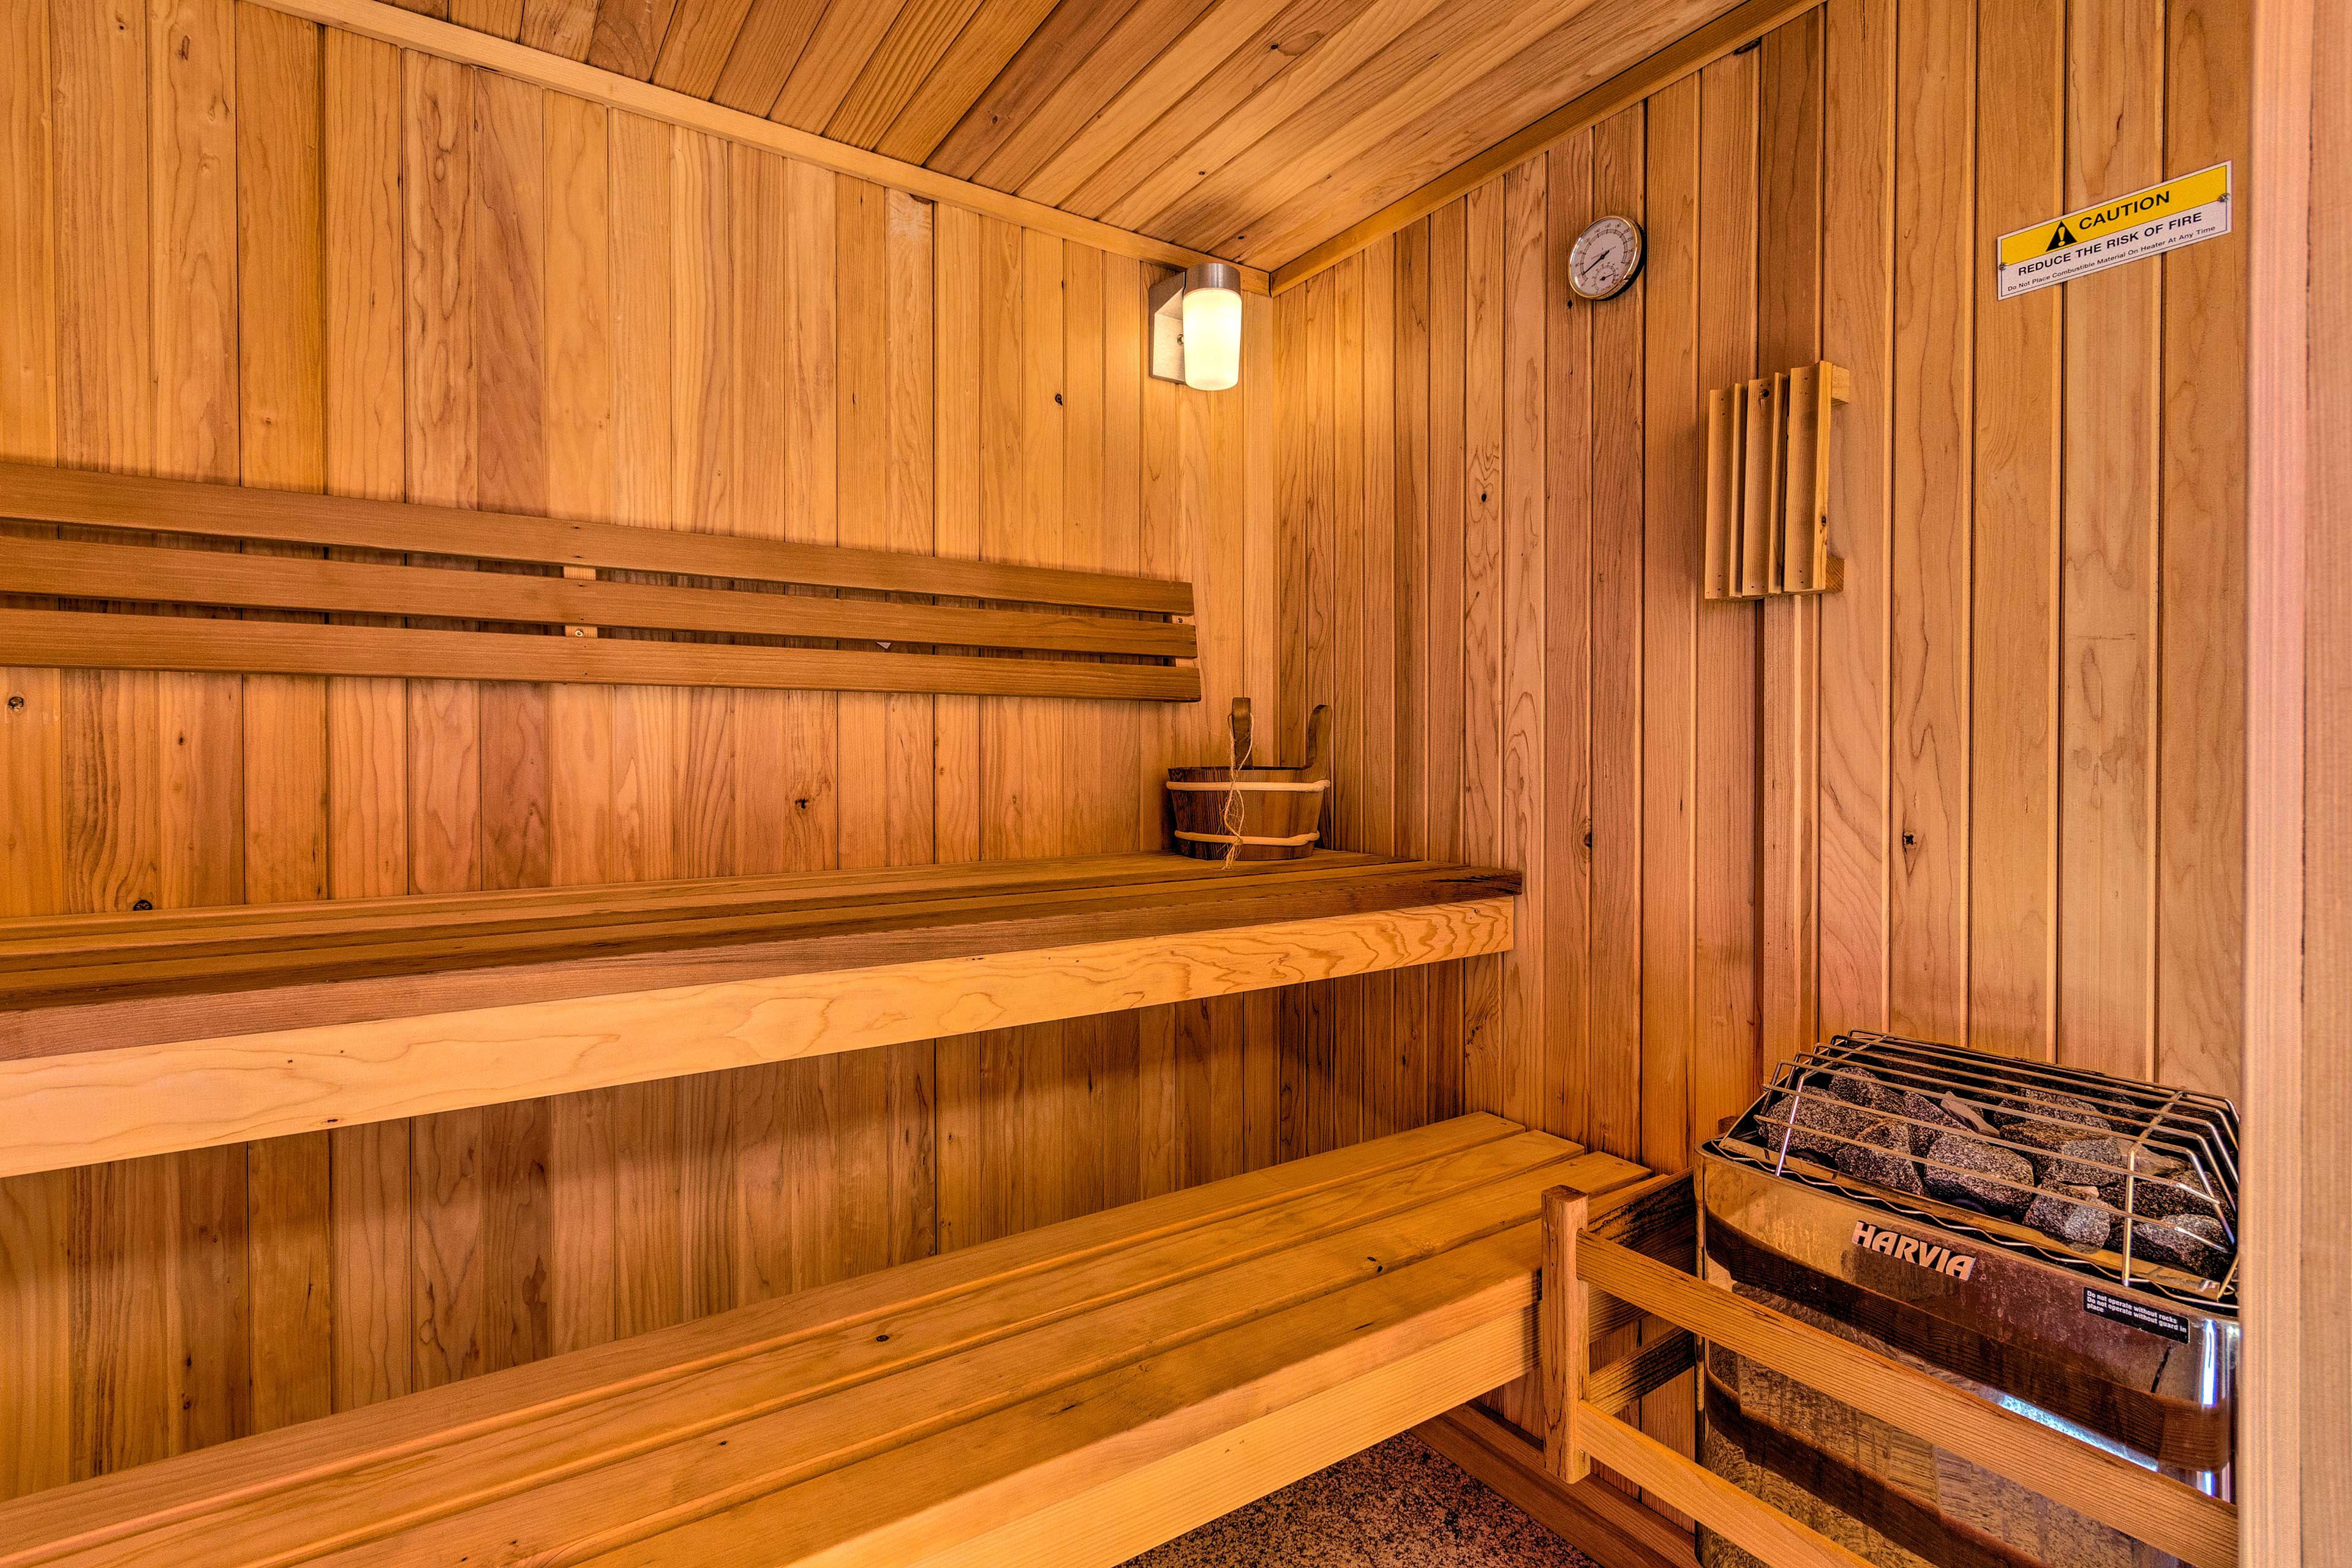 Up to 5 travelers can fit in the sauna at once!